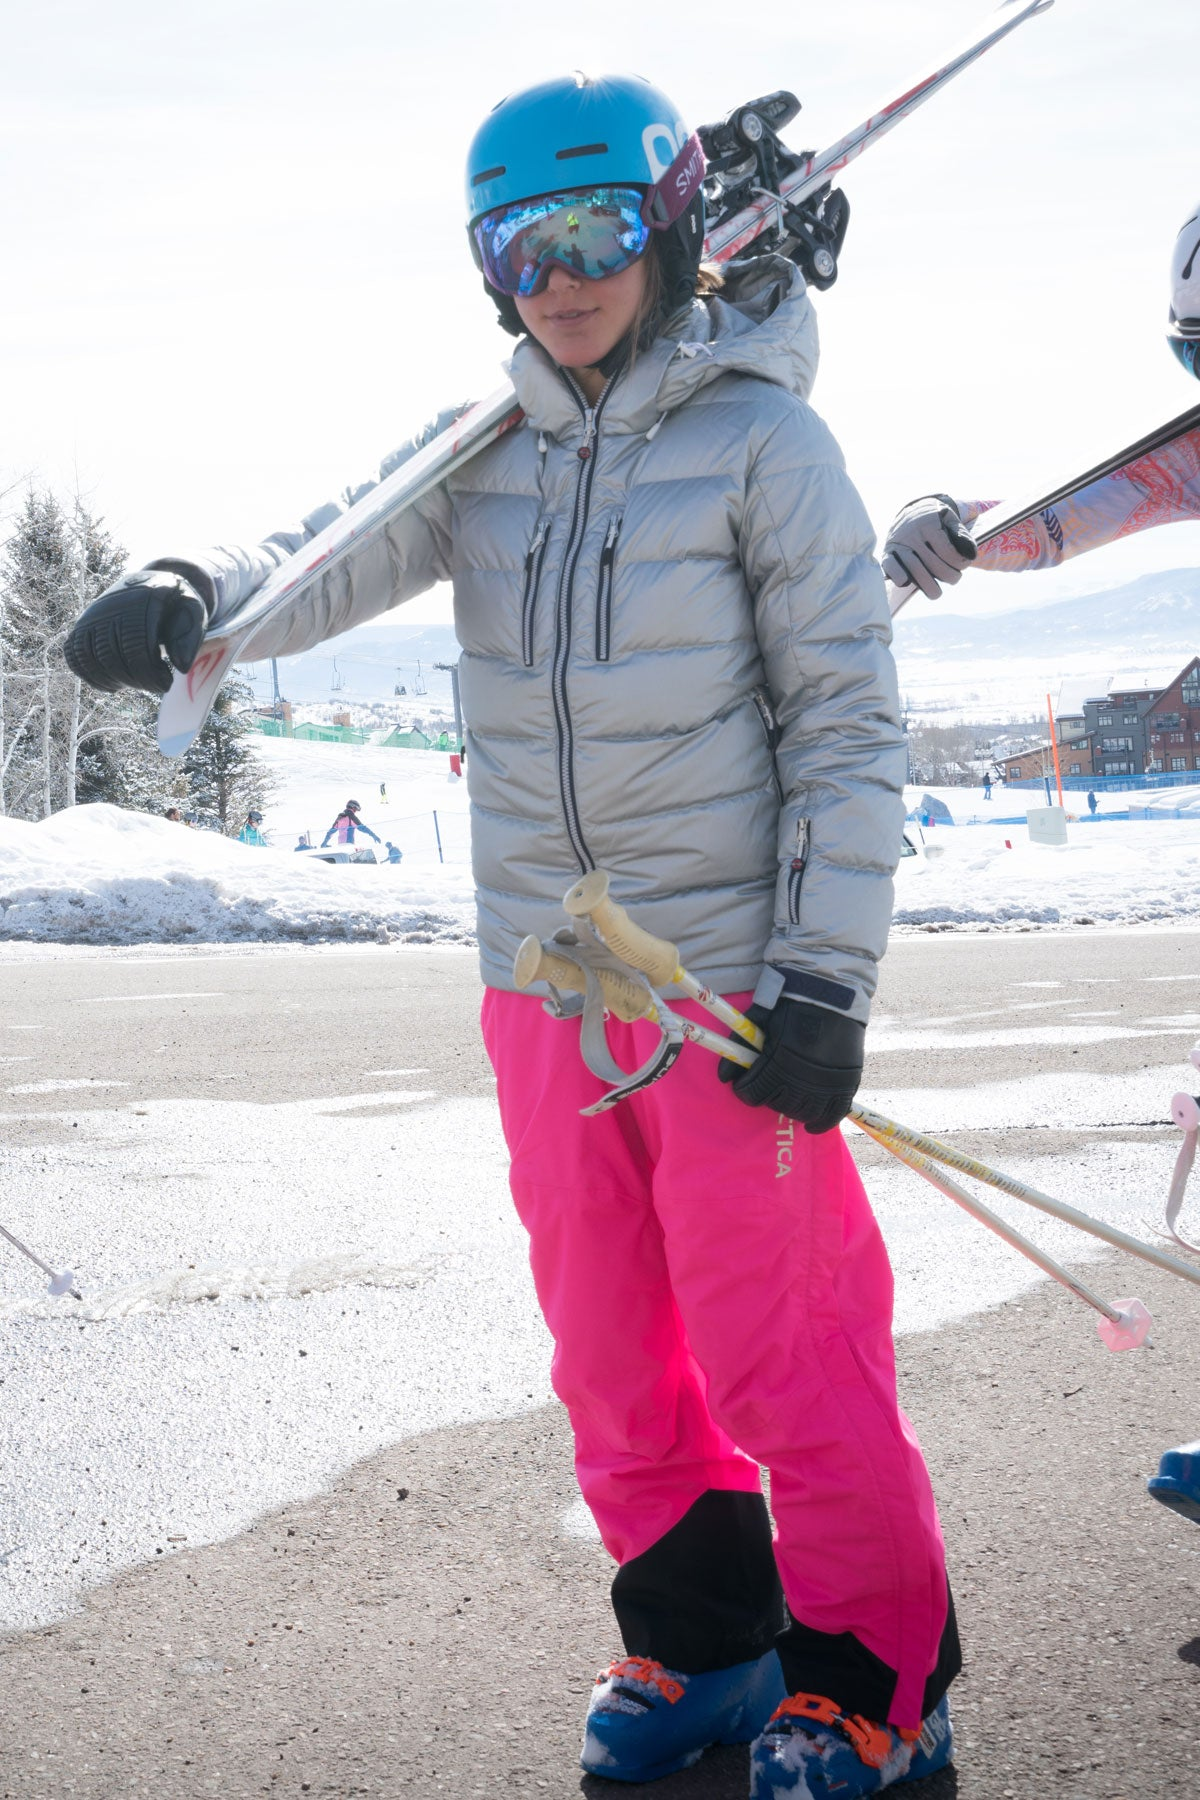 Arctica Youth Side Zip Ski Pants 2.0 - Hot Pink